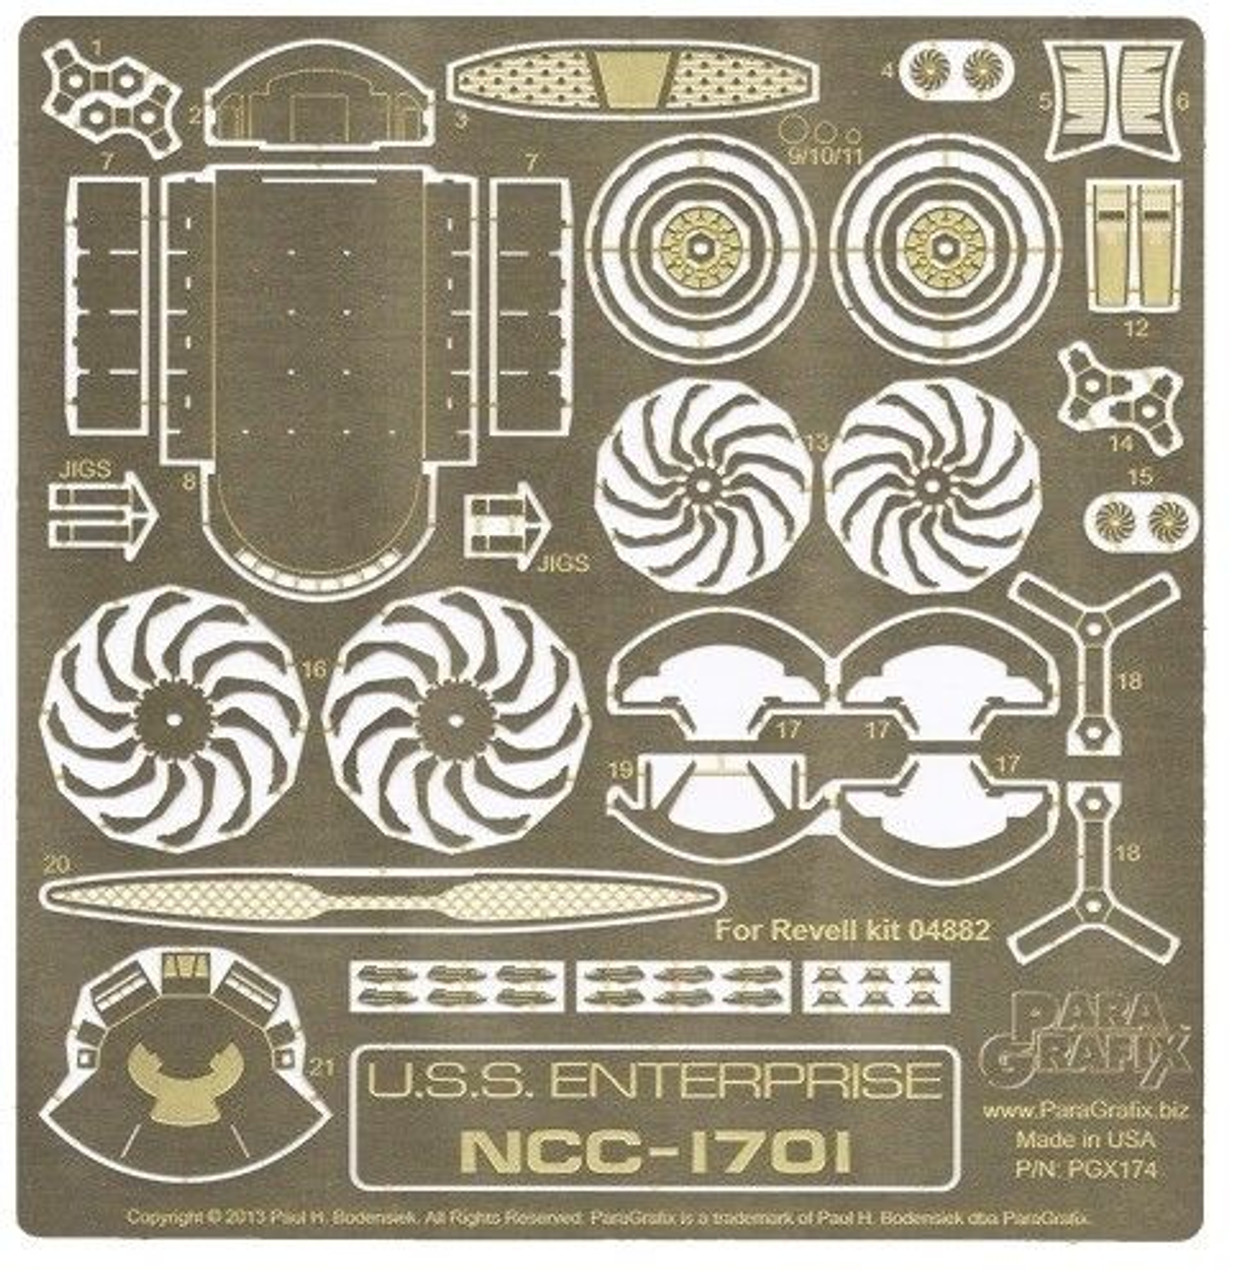 Paragrafix PGX174 1/500 Star Trek 2009 USS Enterprise Photoetch Set